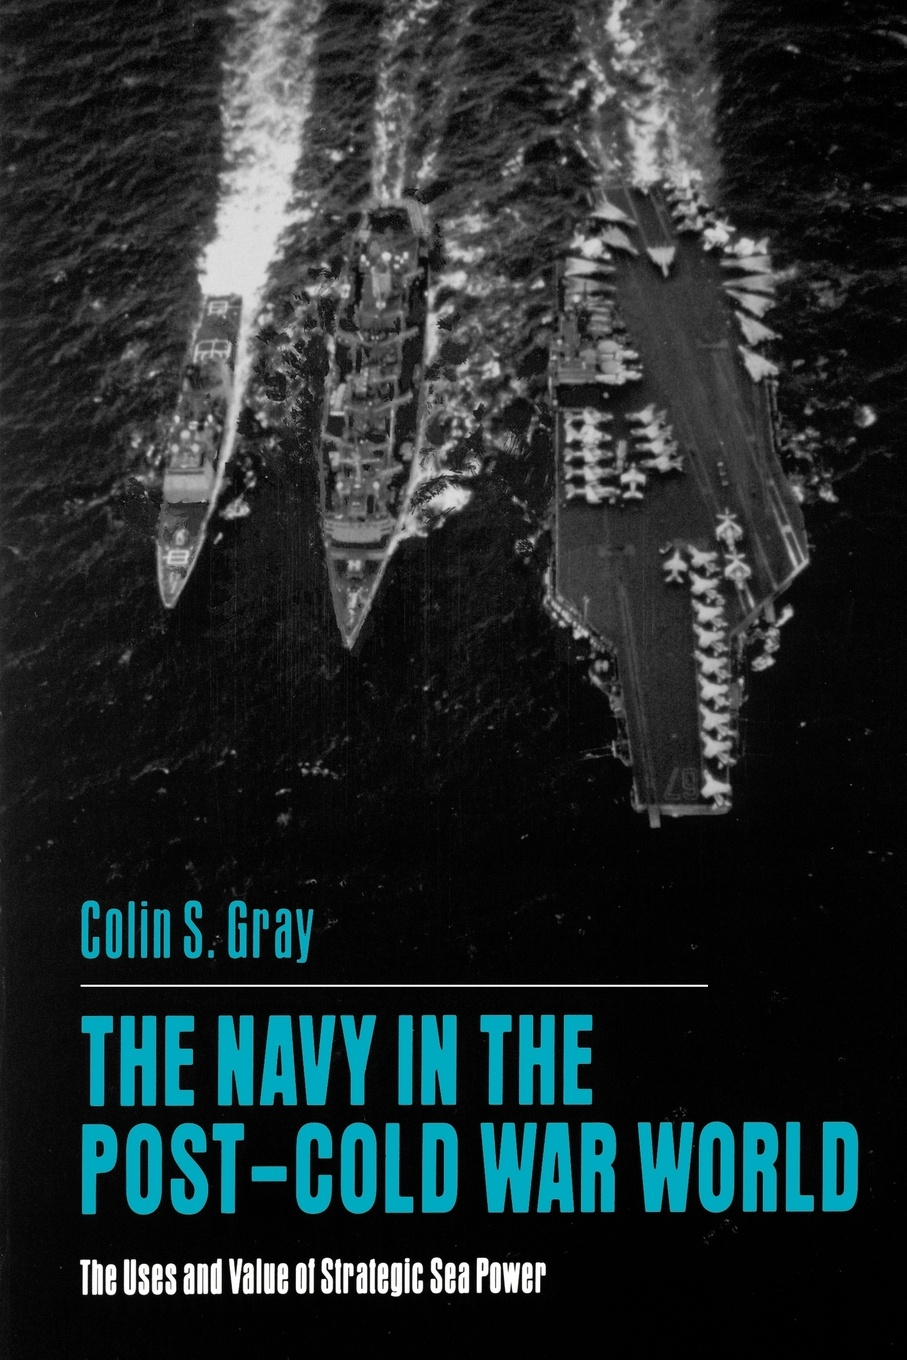 Colin S. Gray The Navy in the Post-Cold War World. The Uses and Value of Strategic Sea Power strategic studies institute samuel s investigation north korean foreign relations in the post cold war world